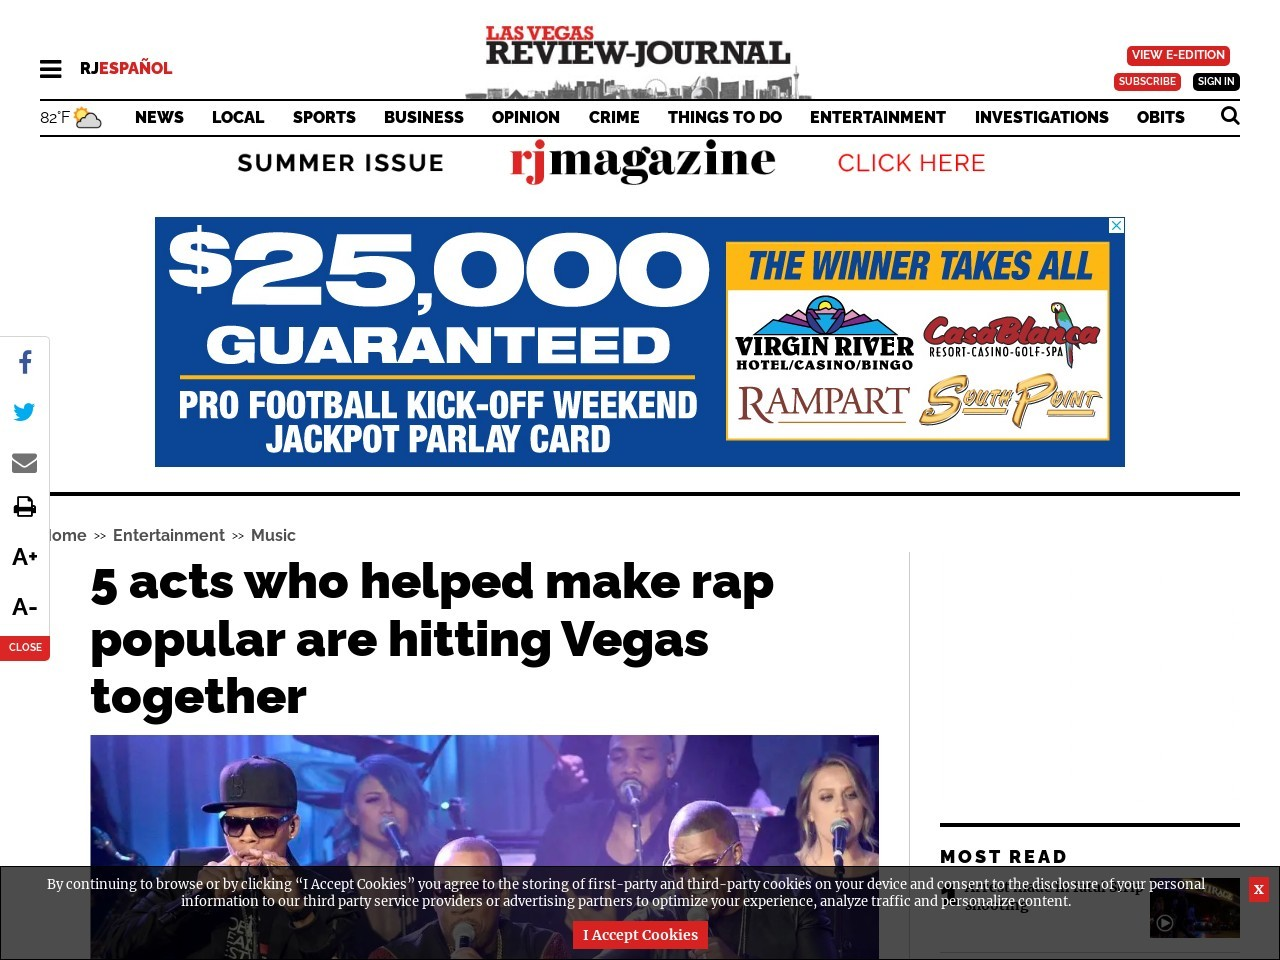 5 acts who helped make rap popular are hitting Vegas together